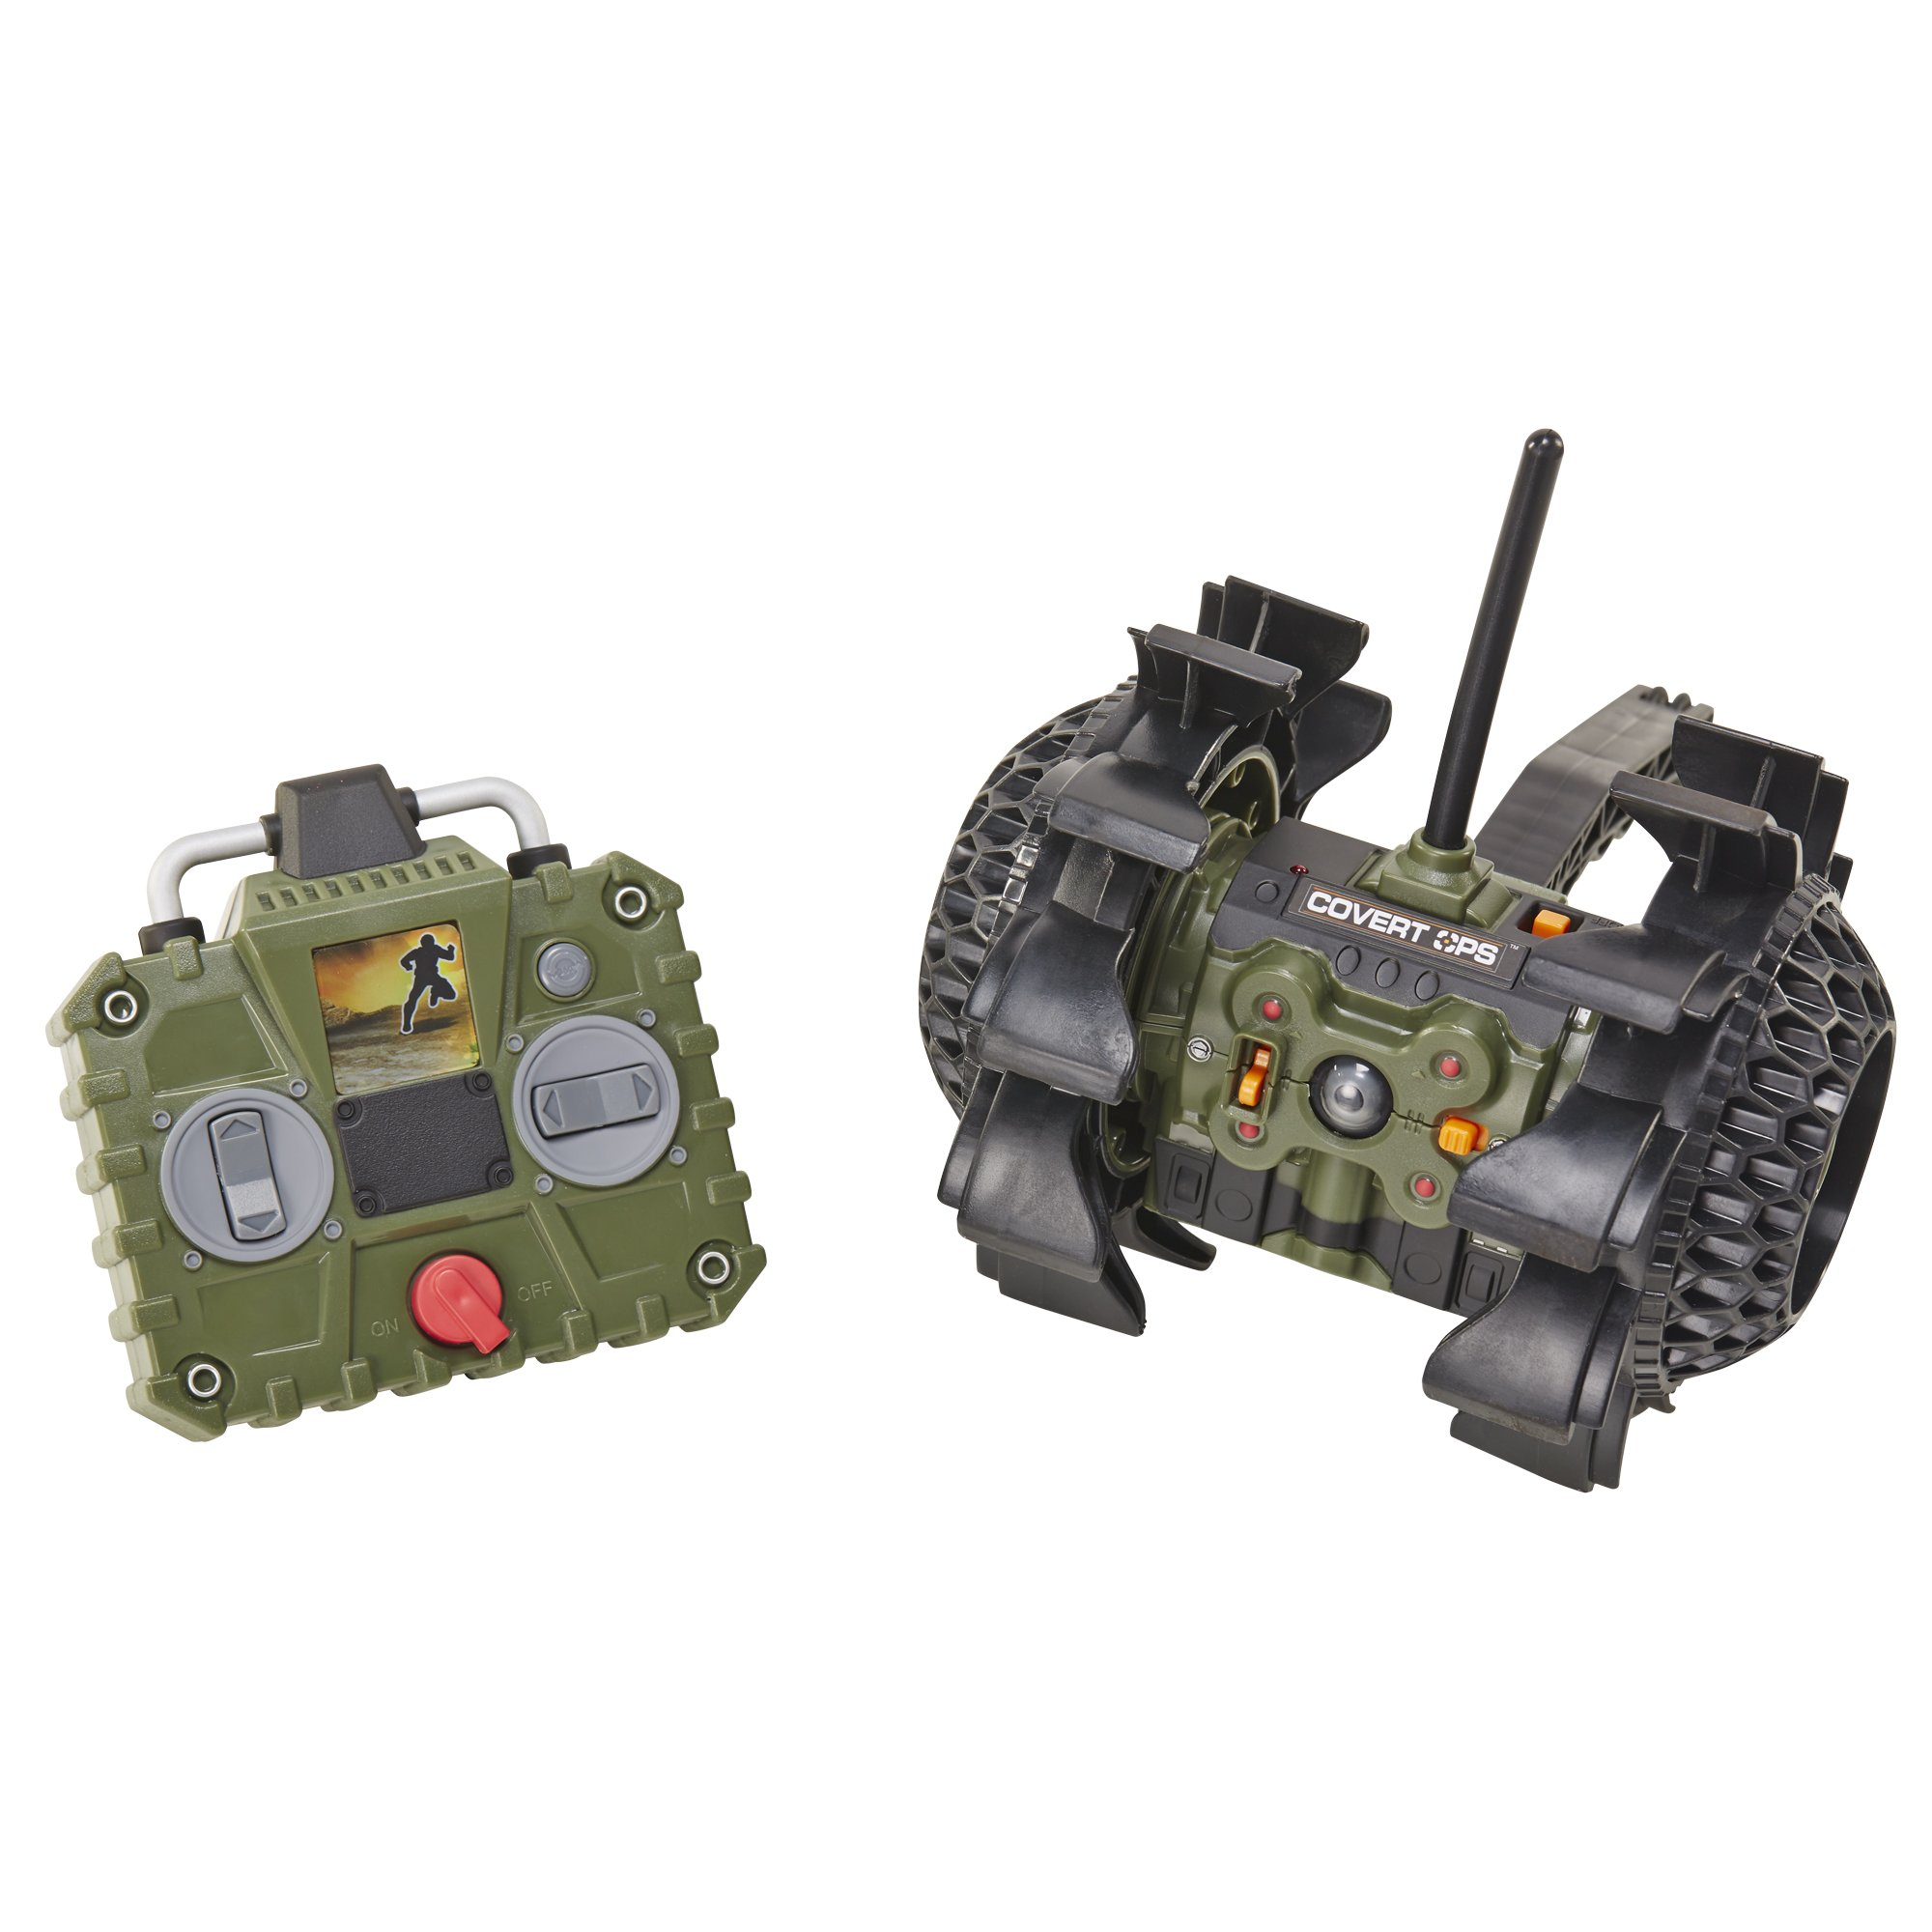 SpyNet Covert Ops Ultra Tuff Video Recon Bot by SpyNet